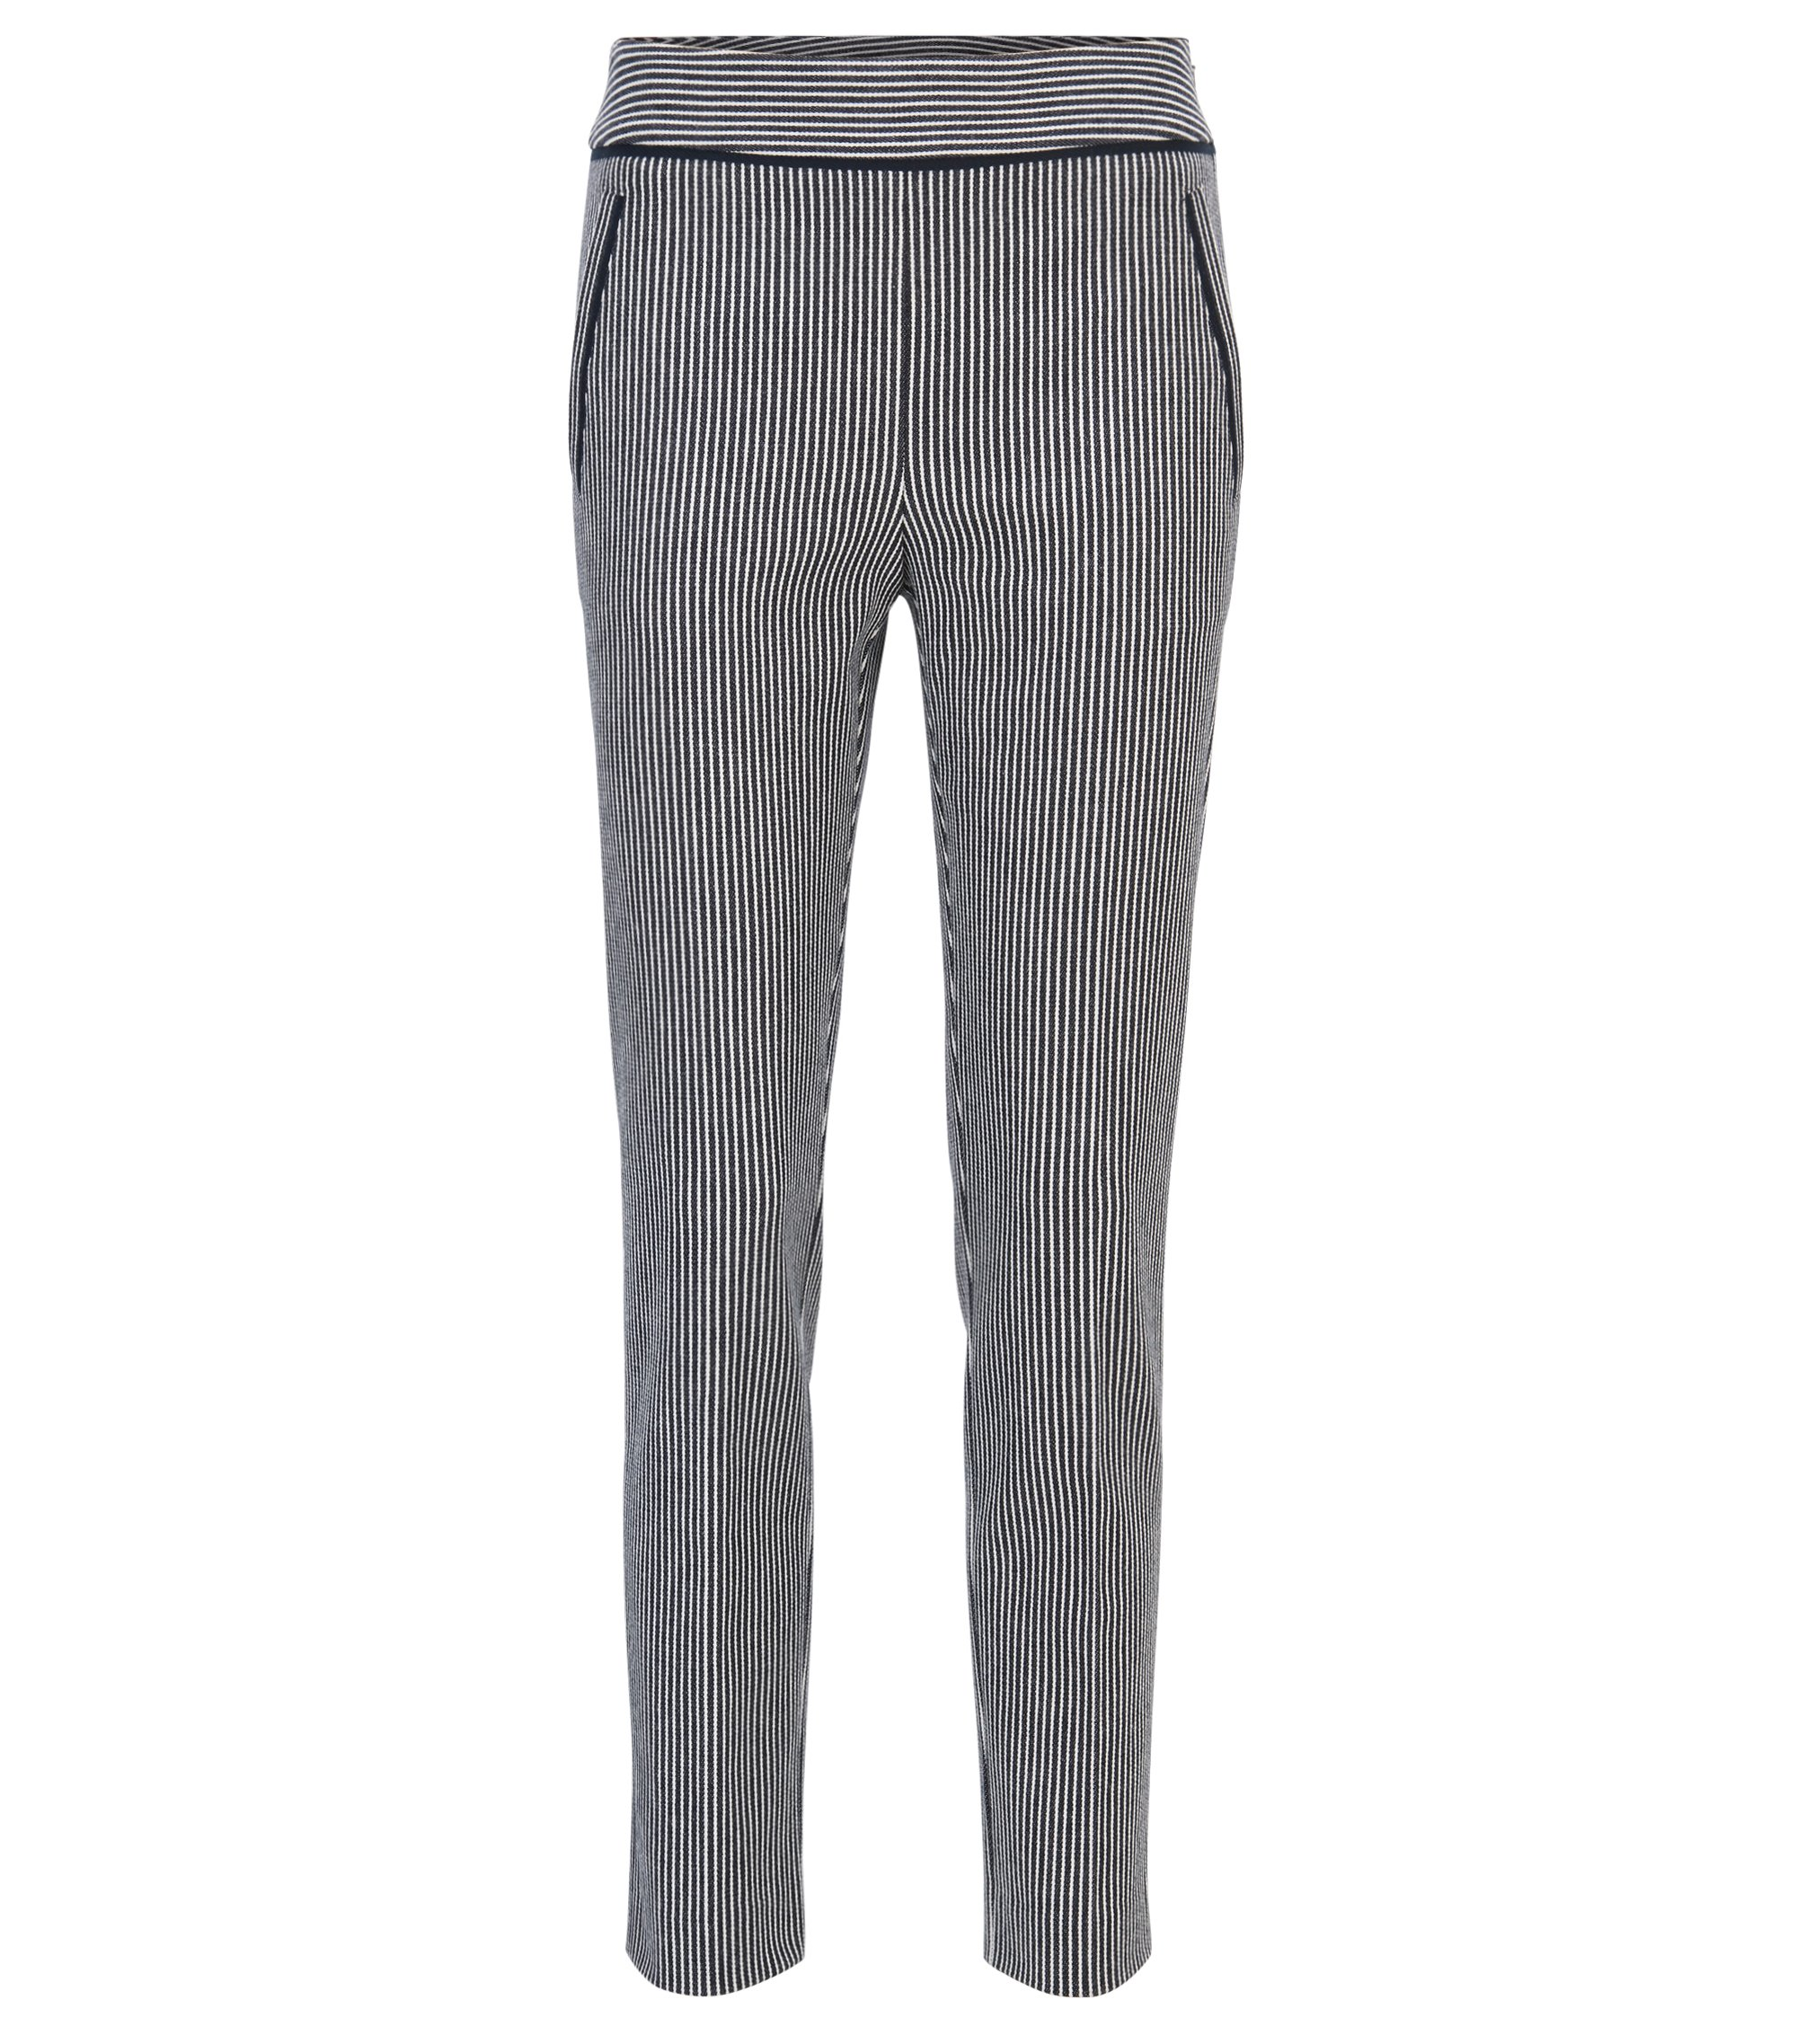 Regular-fit cropped trousers in denim-stripe stretch cotton, Patterned